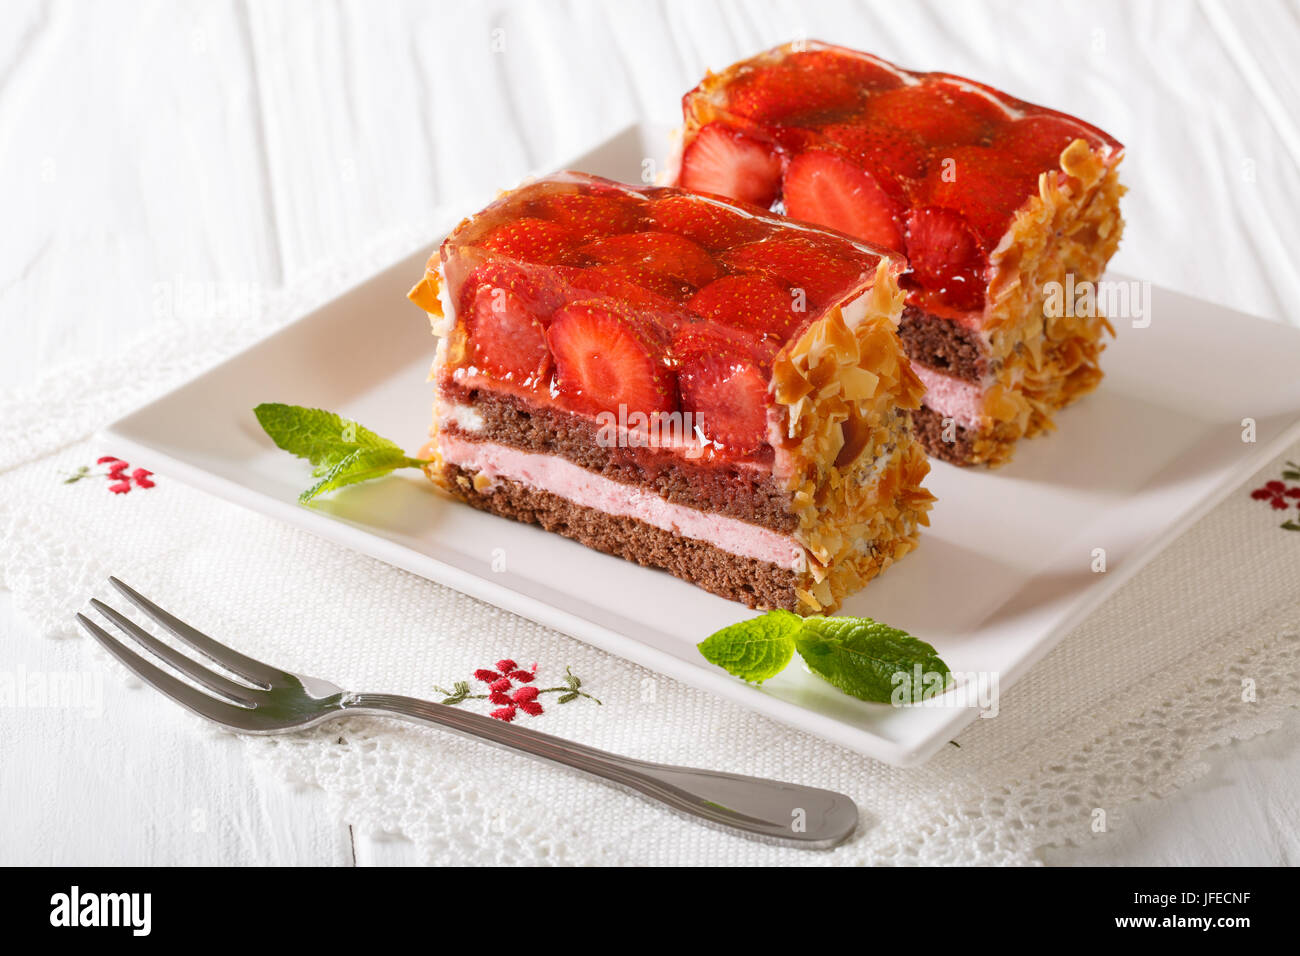 Beautiful strawberry jelly cake with almonds close-up on a plate. horizontal - Stock Image